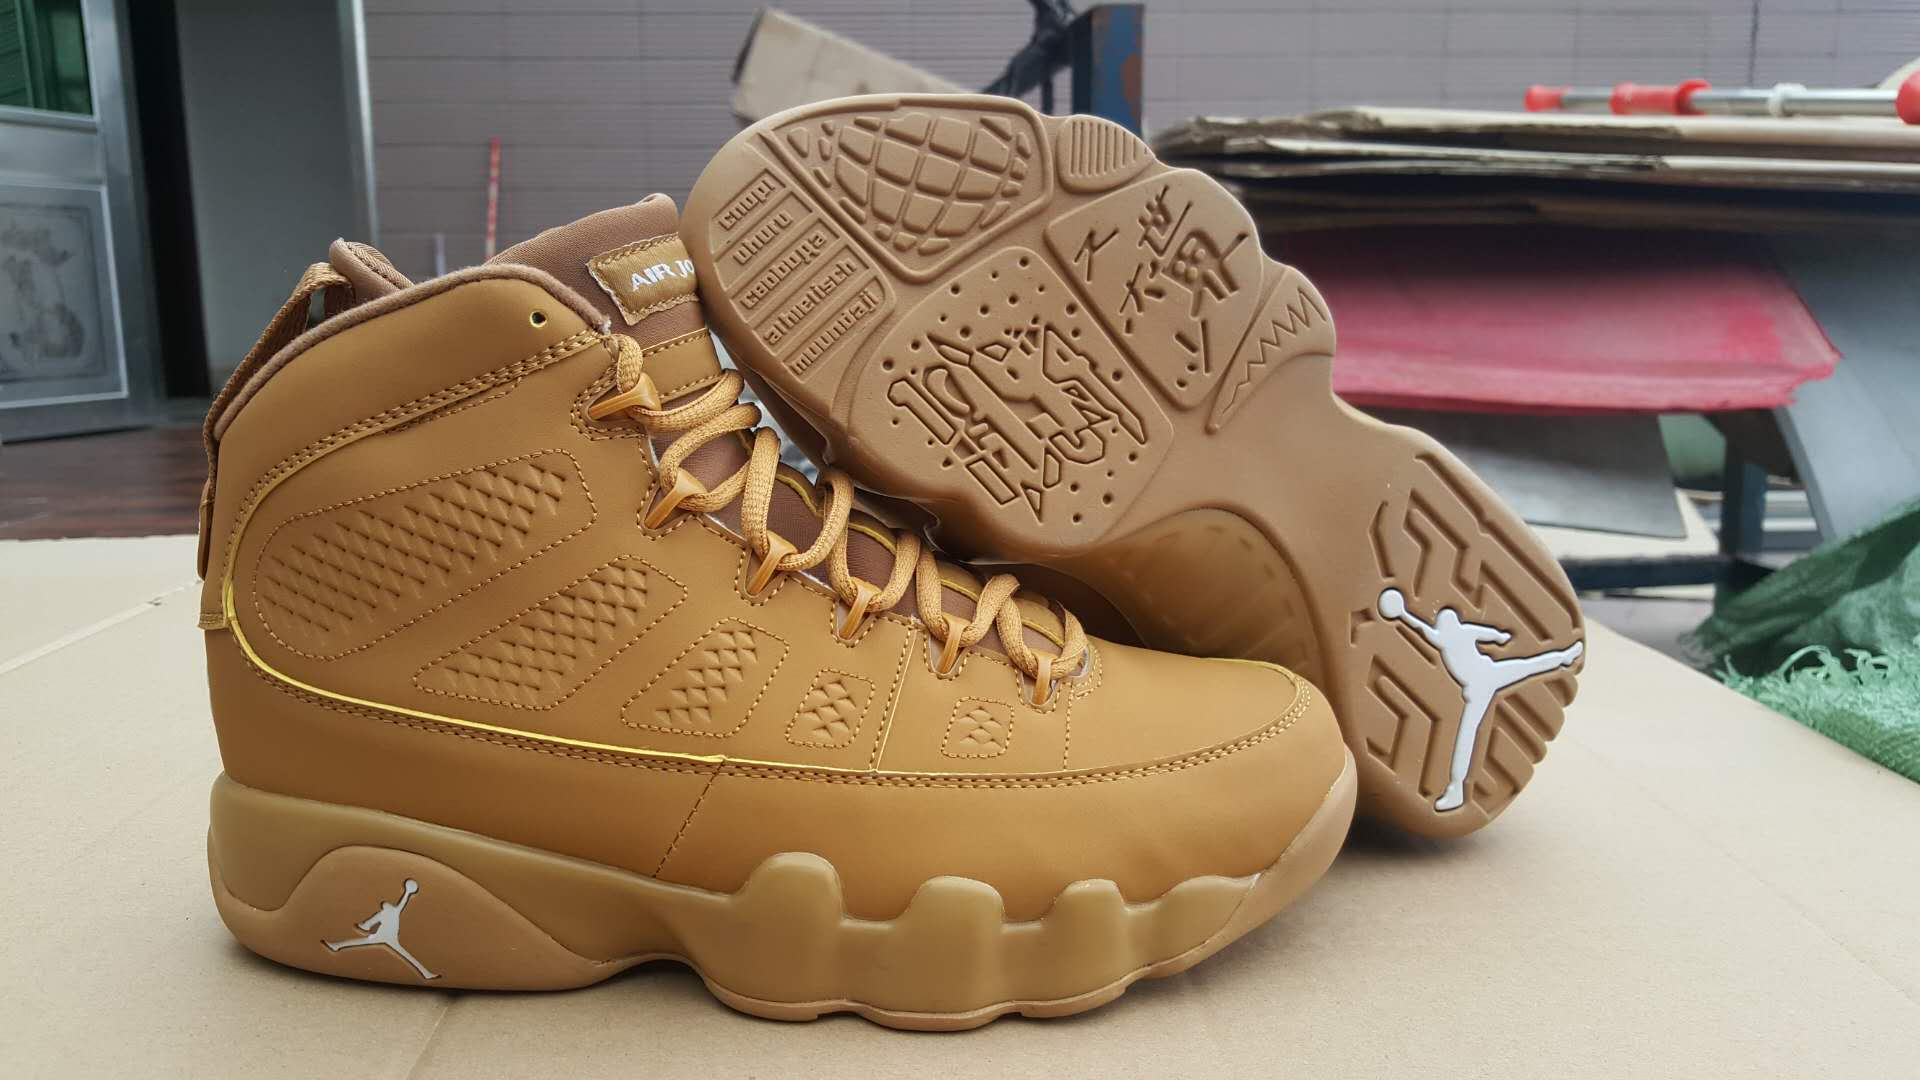 New Air Jordan 9 Wheat Yellow Shoes